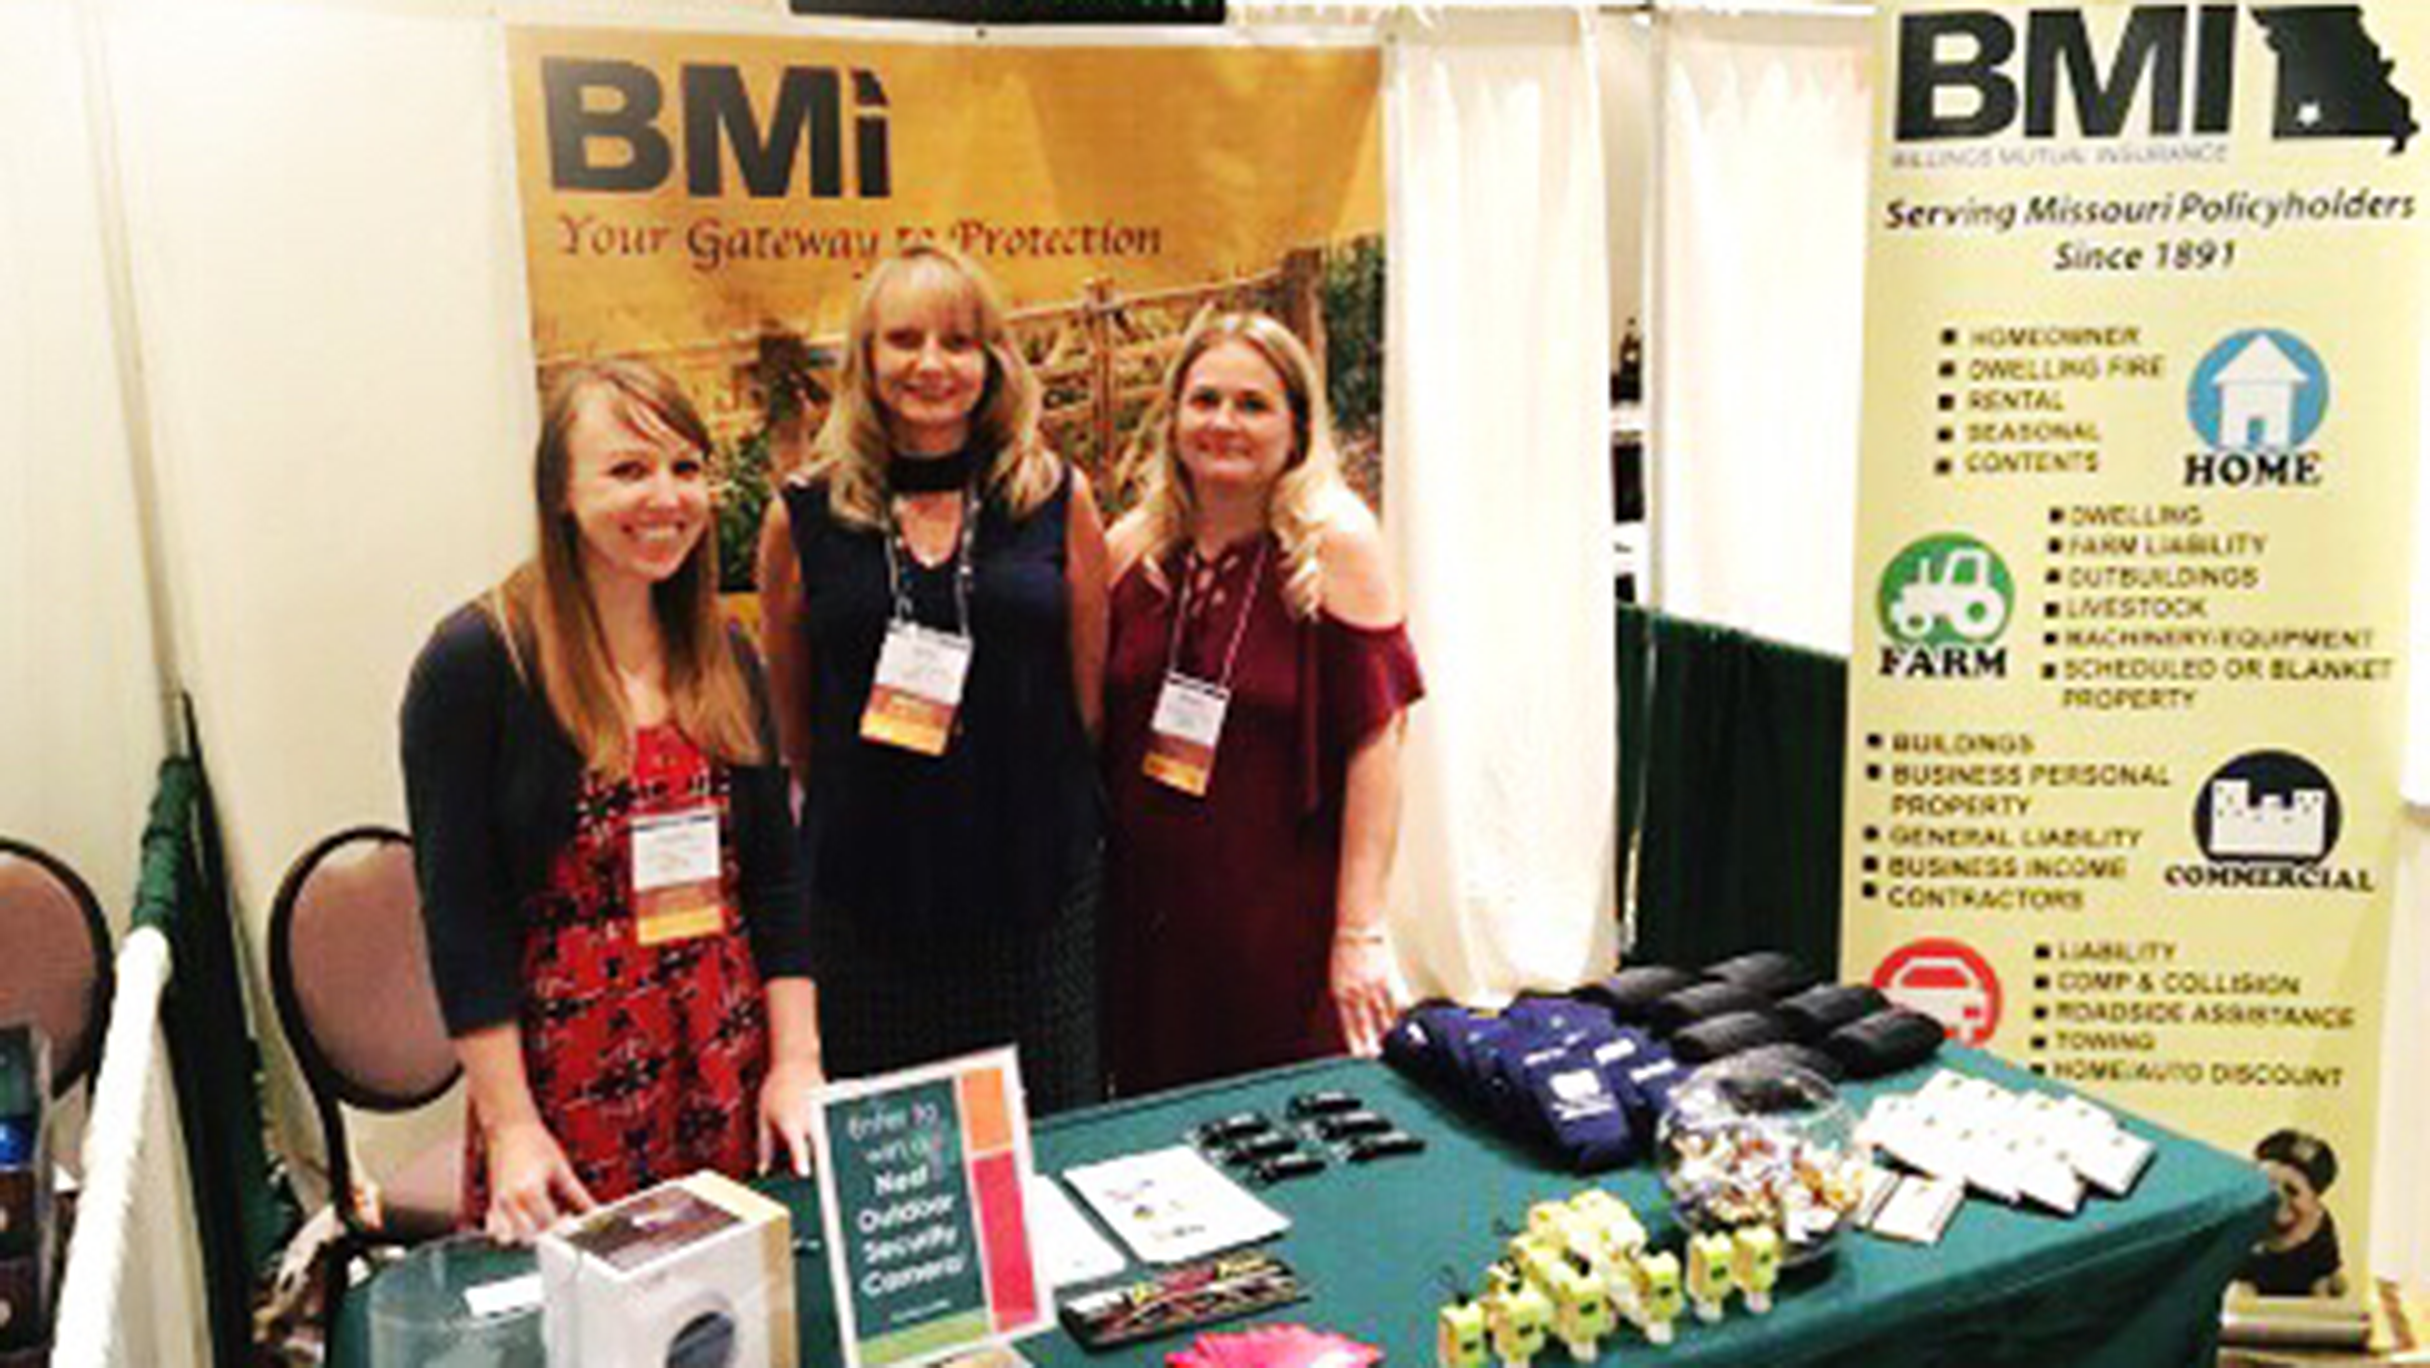 BMI Summer Events